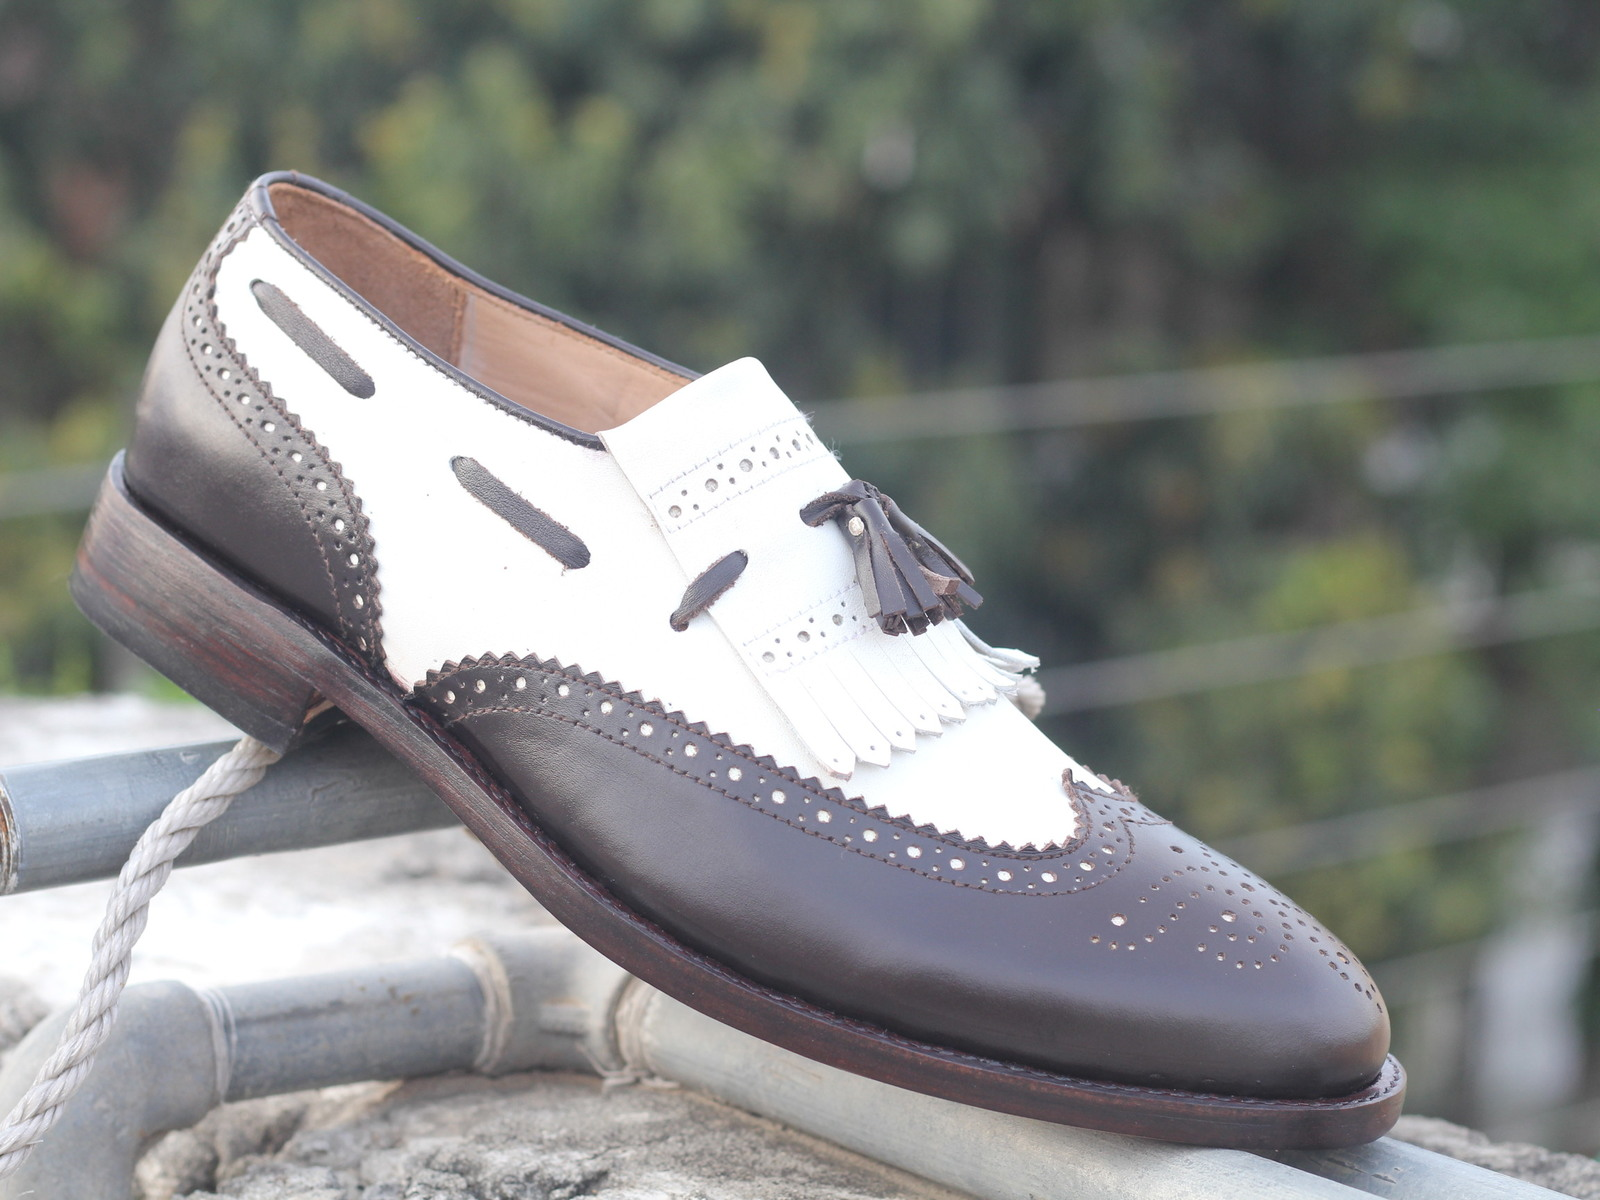 Primary image for Handmade Brown White Tussle Leather Shoes, Men's Ankle Dress Formal Shoes